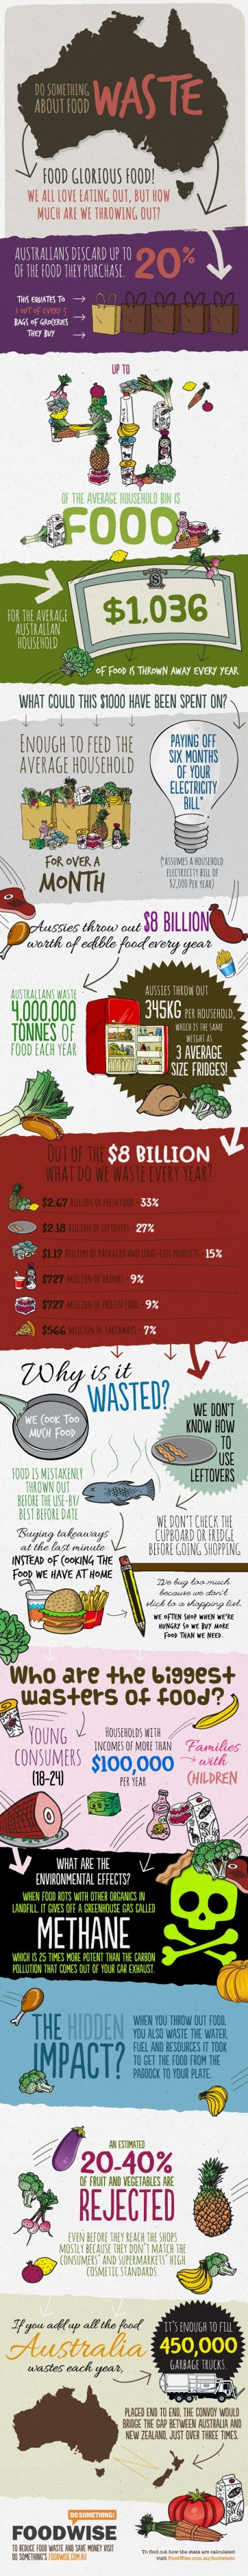 foodwaste-infographic.jpg